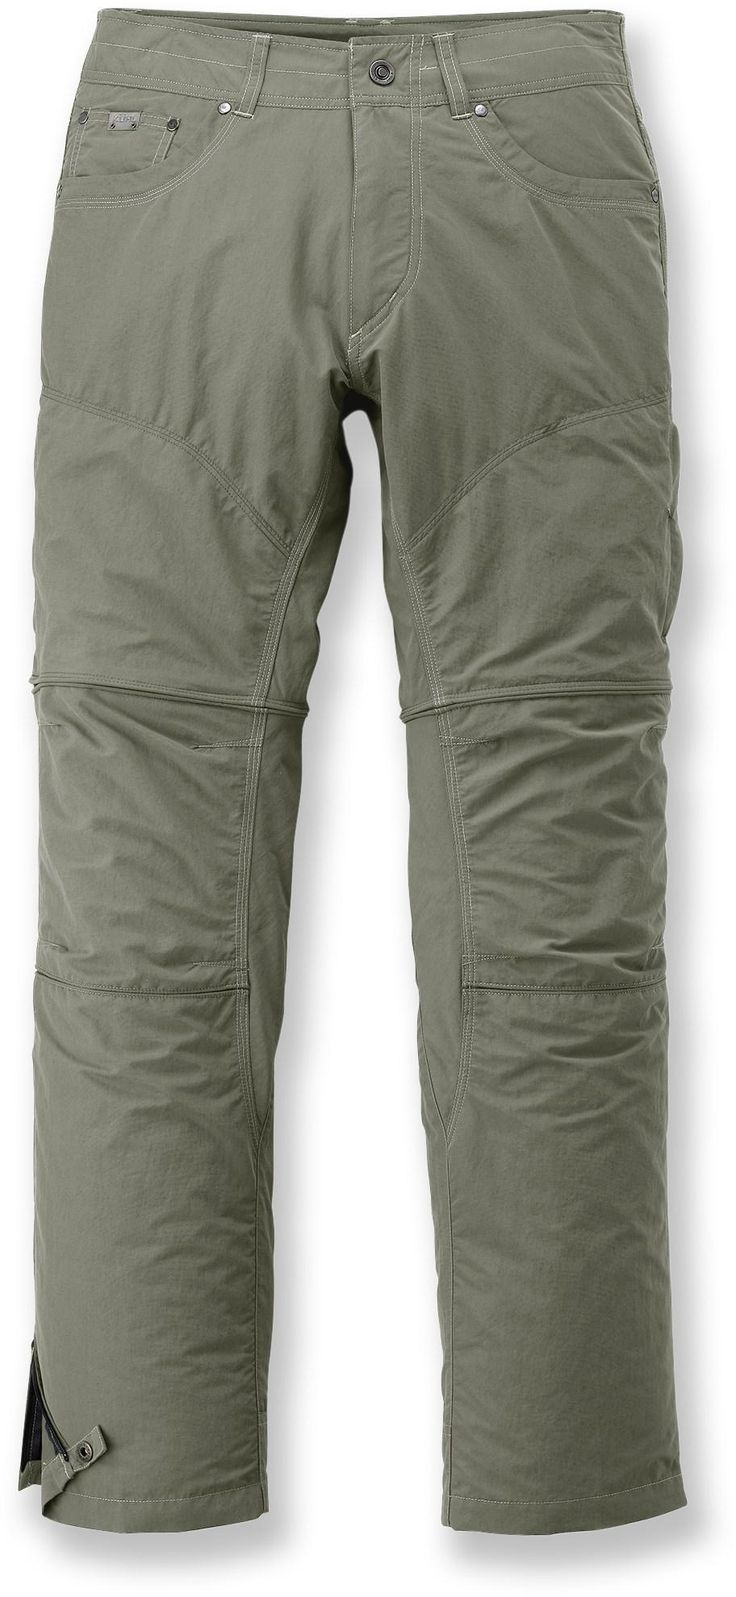 137 best outdoor clothing gear supplies images on pinterest 2012 editors choice award winner april issue of backpacker magazine men s kuhl liberator